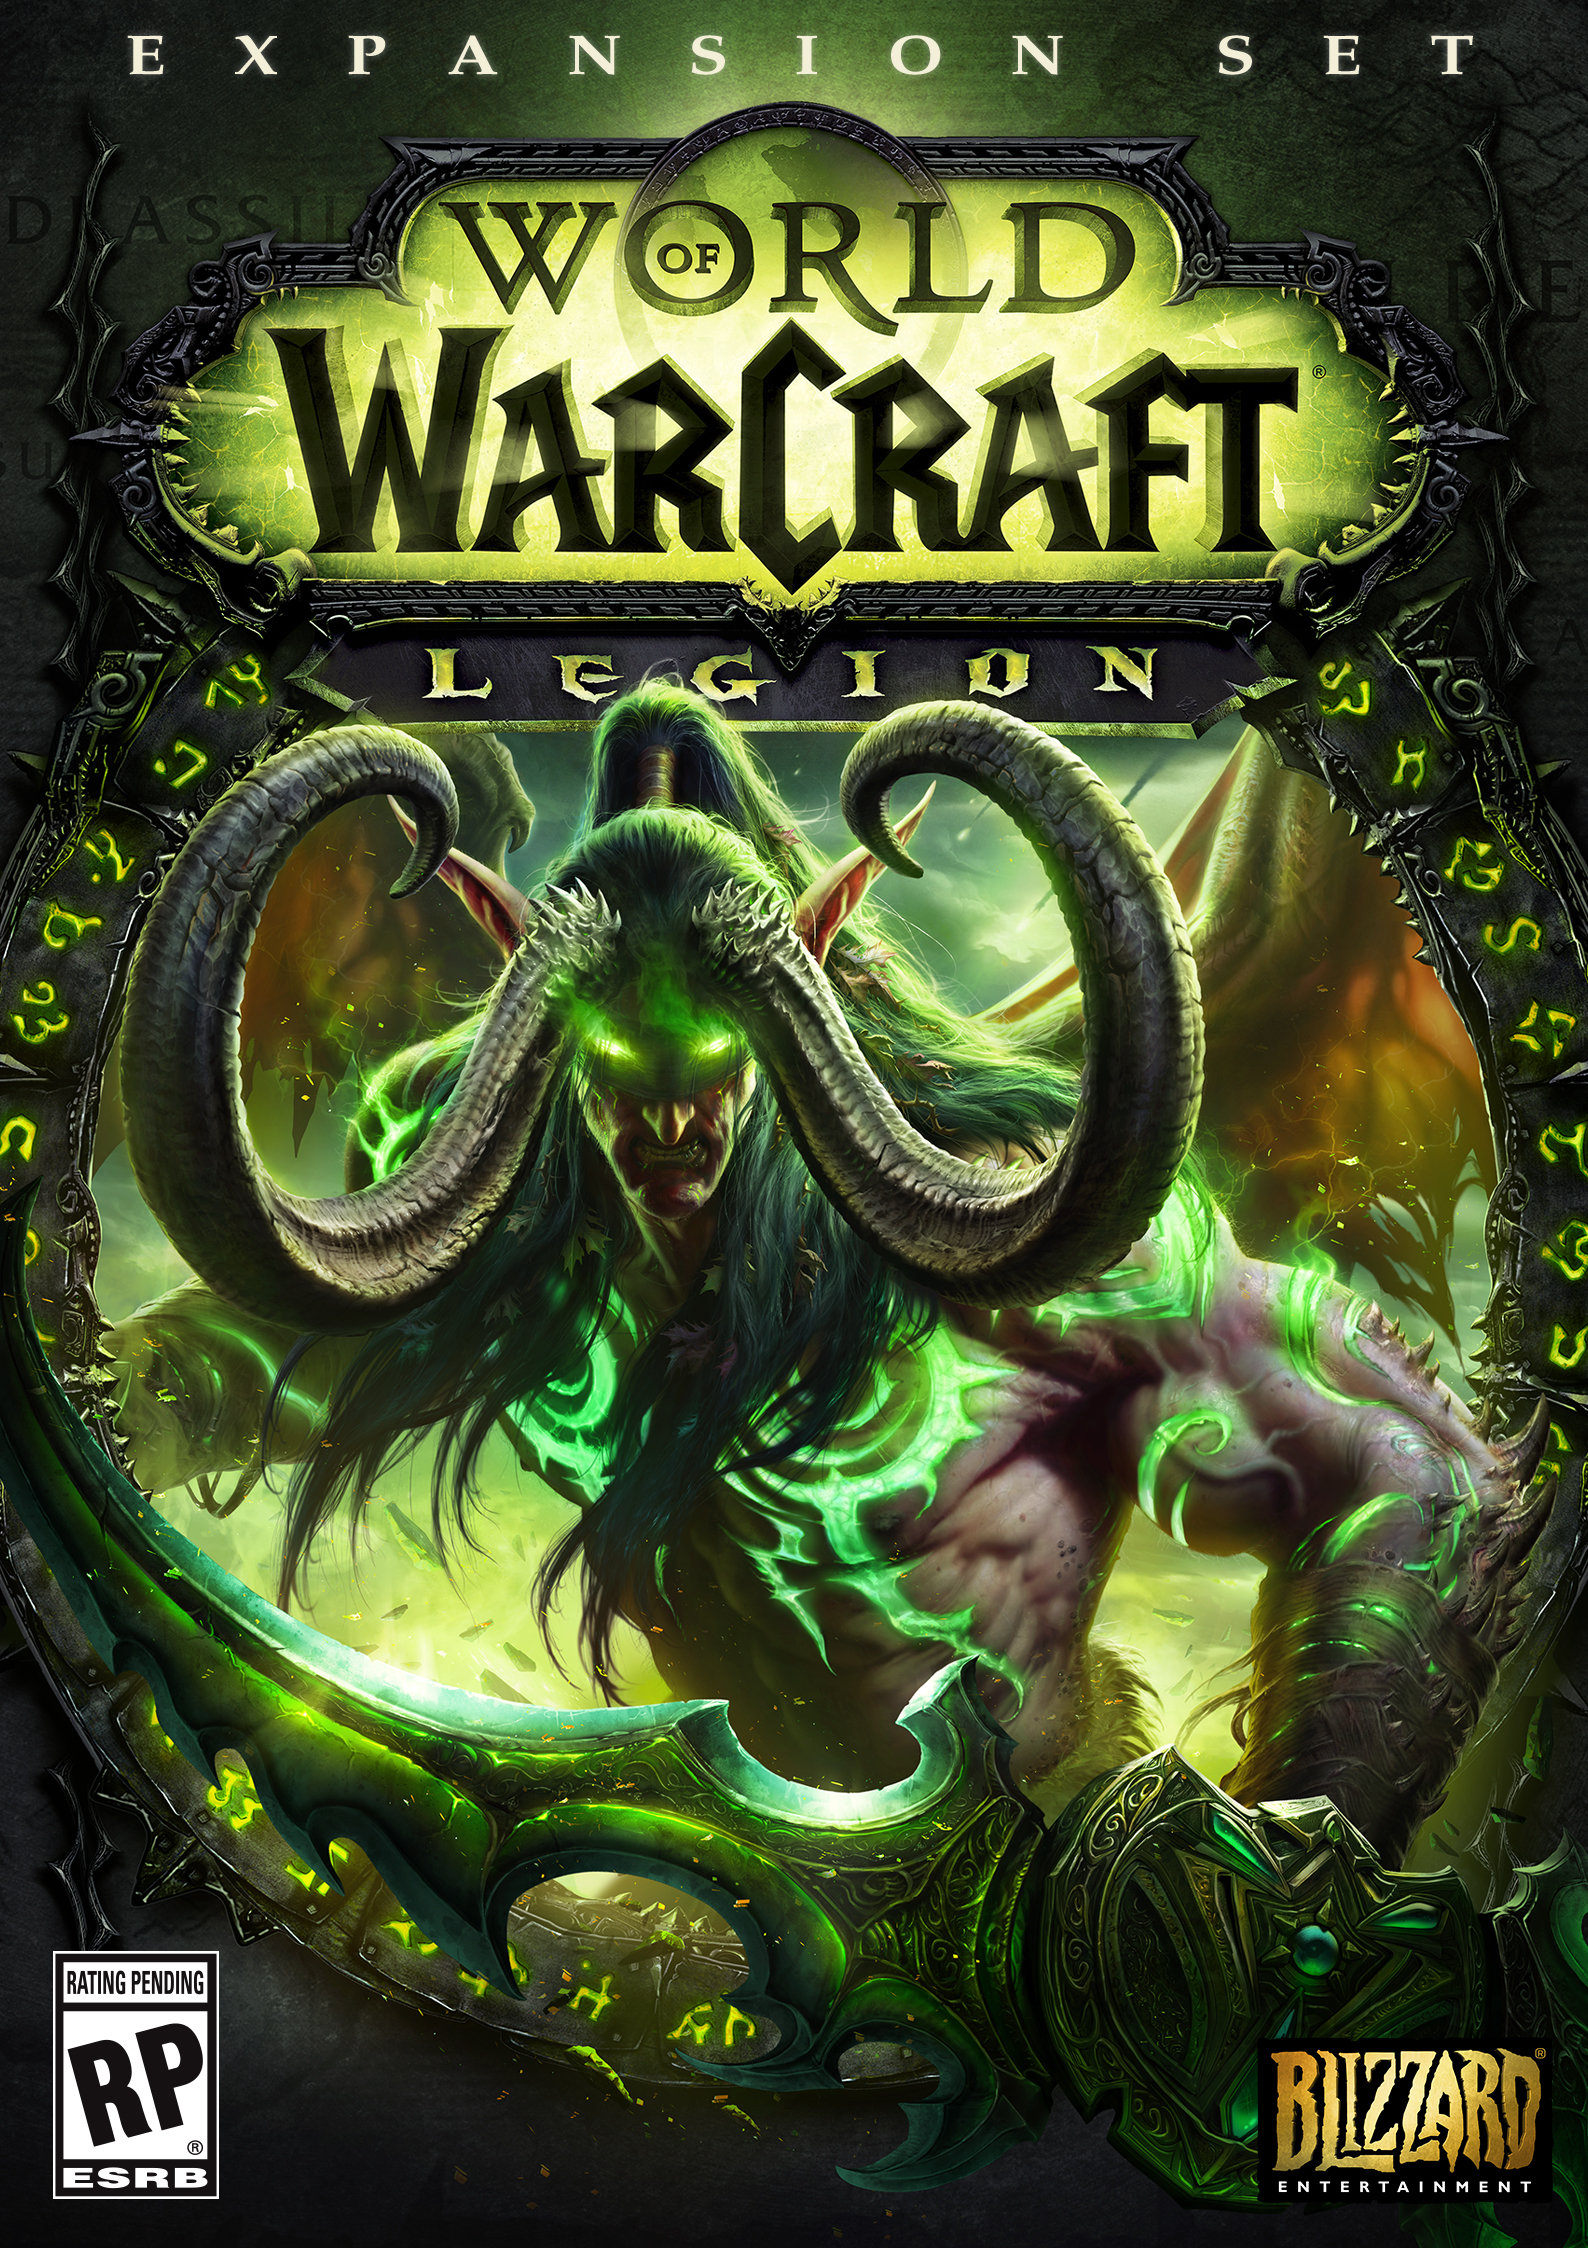 warcraft 2 cover art